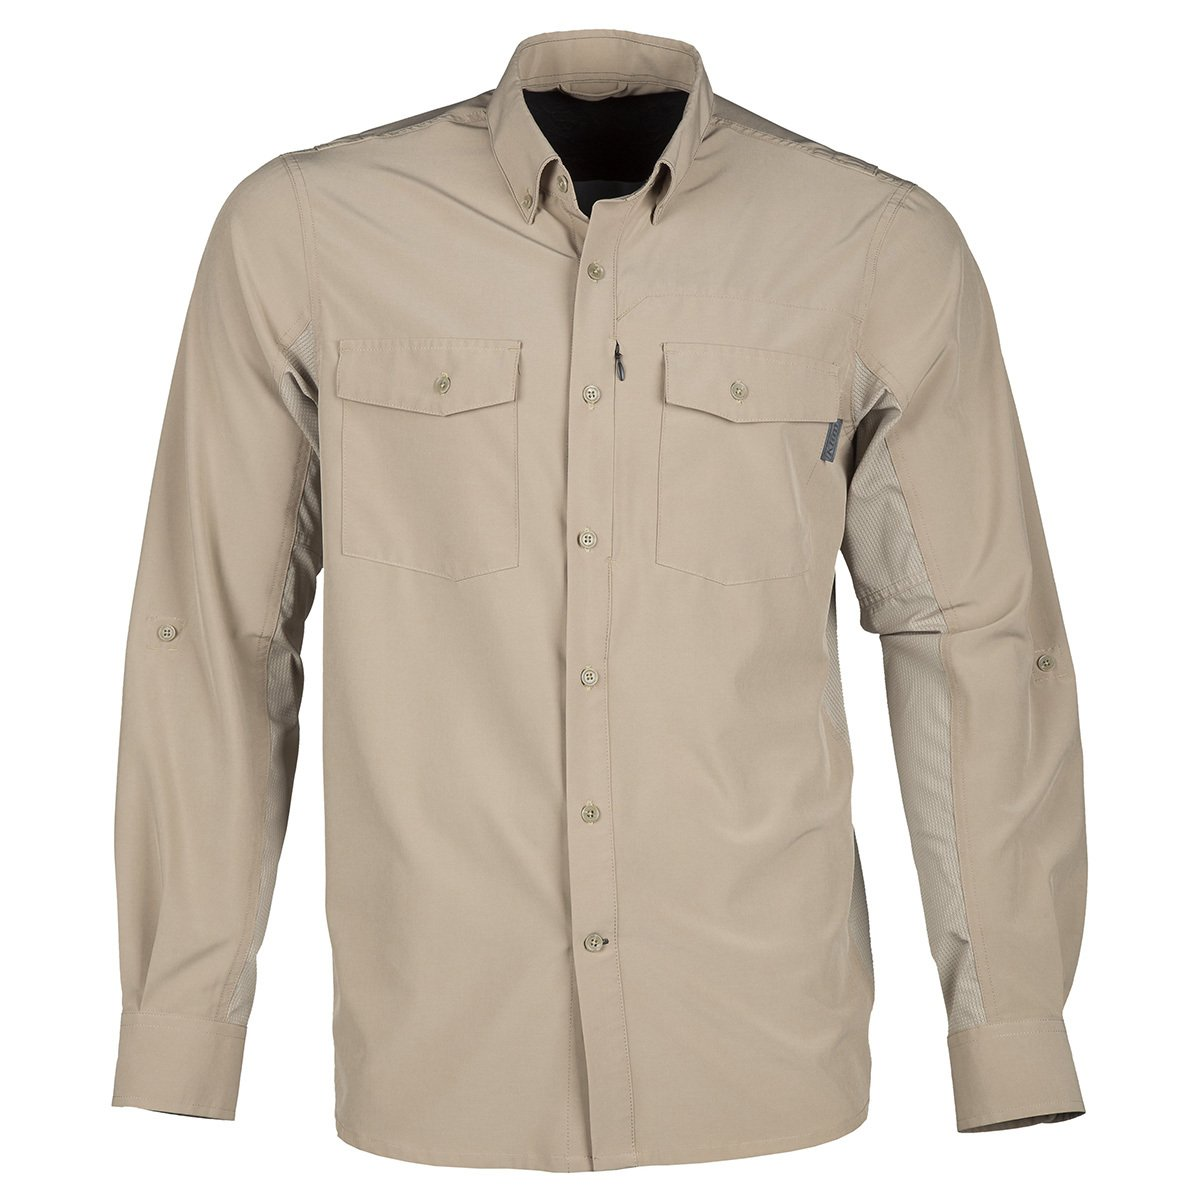 Klim Basecamp LS Shirt - XL/Tan